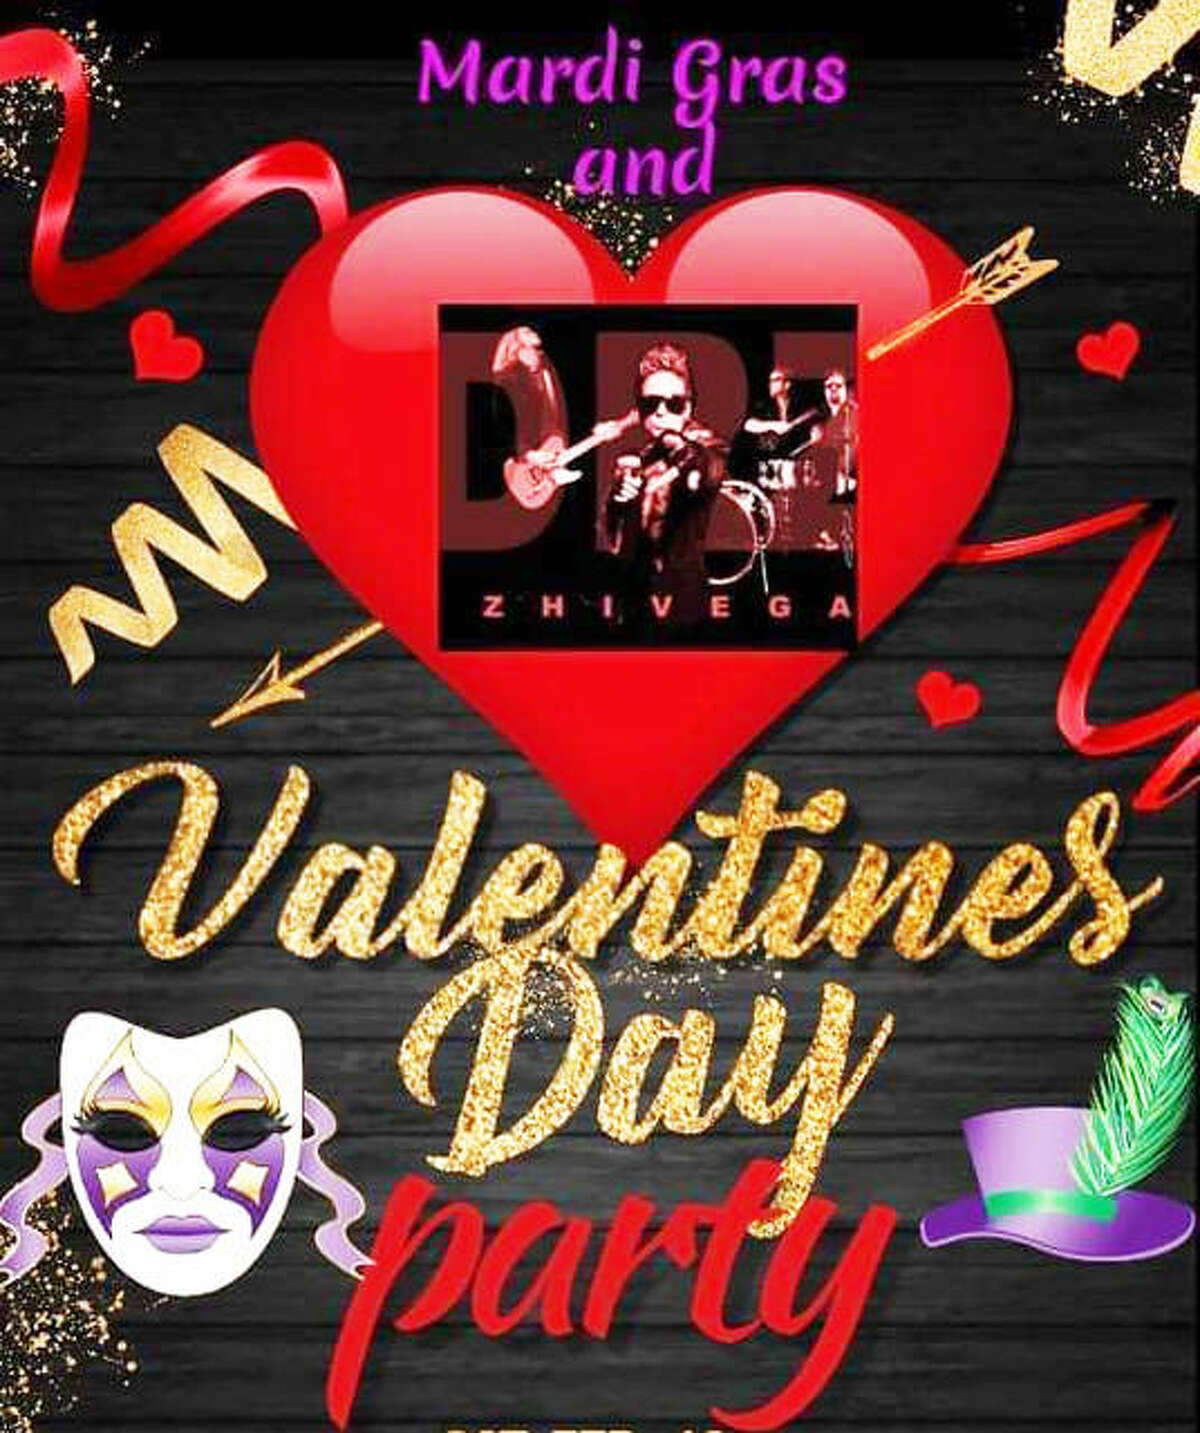 Stick around in Alton Saturday for a combo Valentine's Day/Mardi Gras soiree 8 p.m. to midnight at 3rd Chute Bar and Grill II, 2204 Fosterburg Road. Join the gang for one of the such bashes in the Riverbend, with Dr. Zhivegas in the evening and DJ Karaoke with RNR Entertainment on the Boat Bar 2 to 6 p.m., when there also will be drink specials. And gumbo soup will be available for purchase all day.